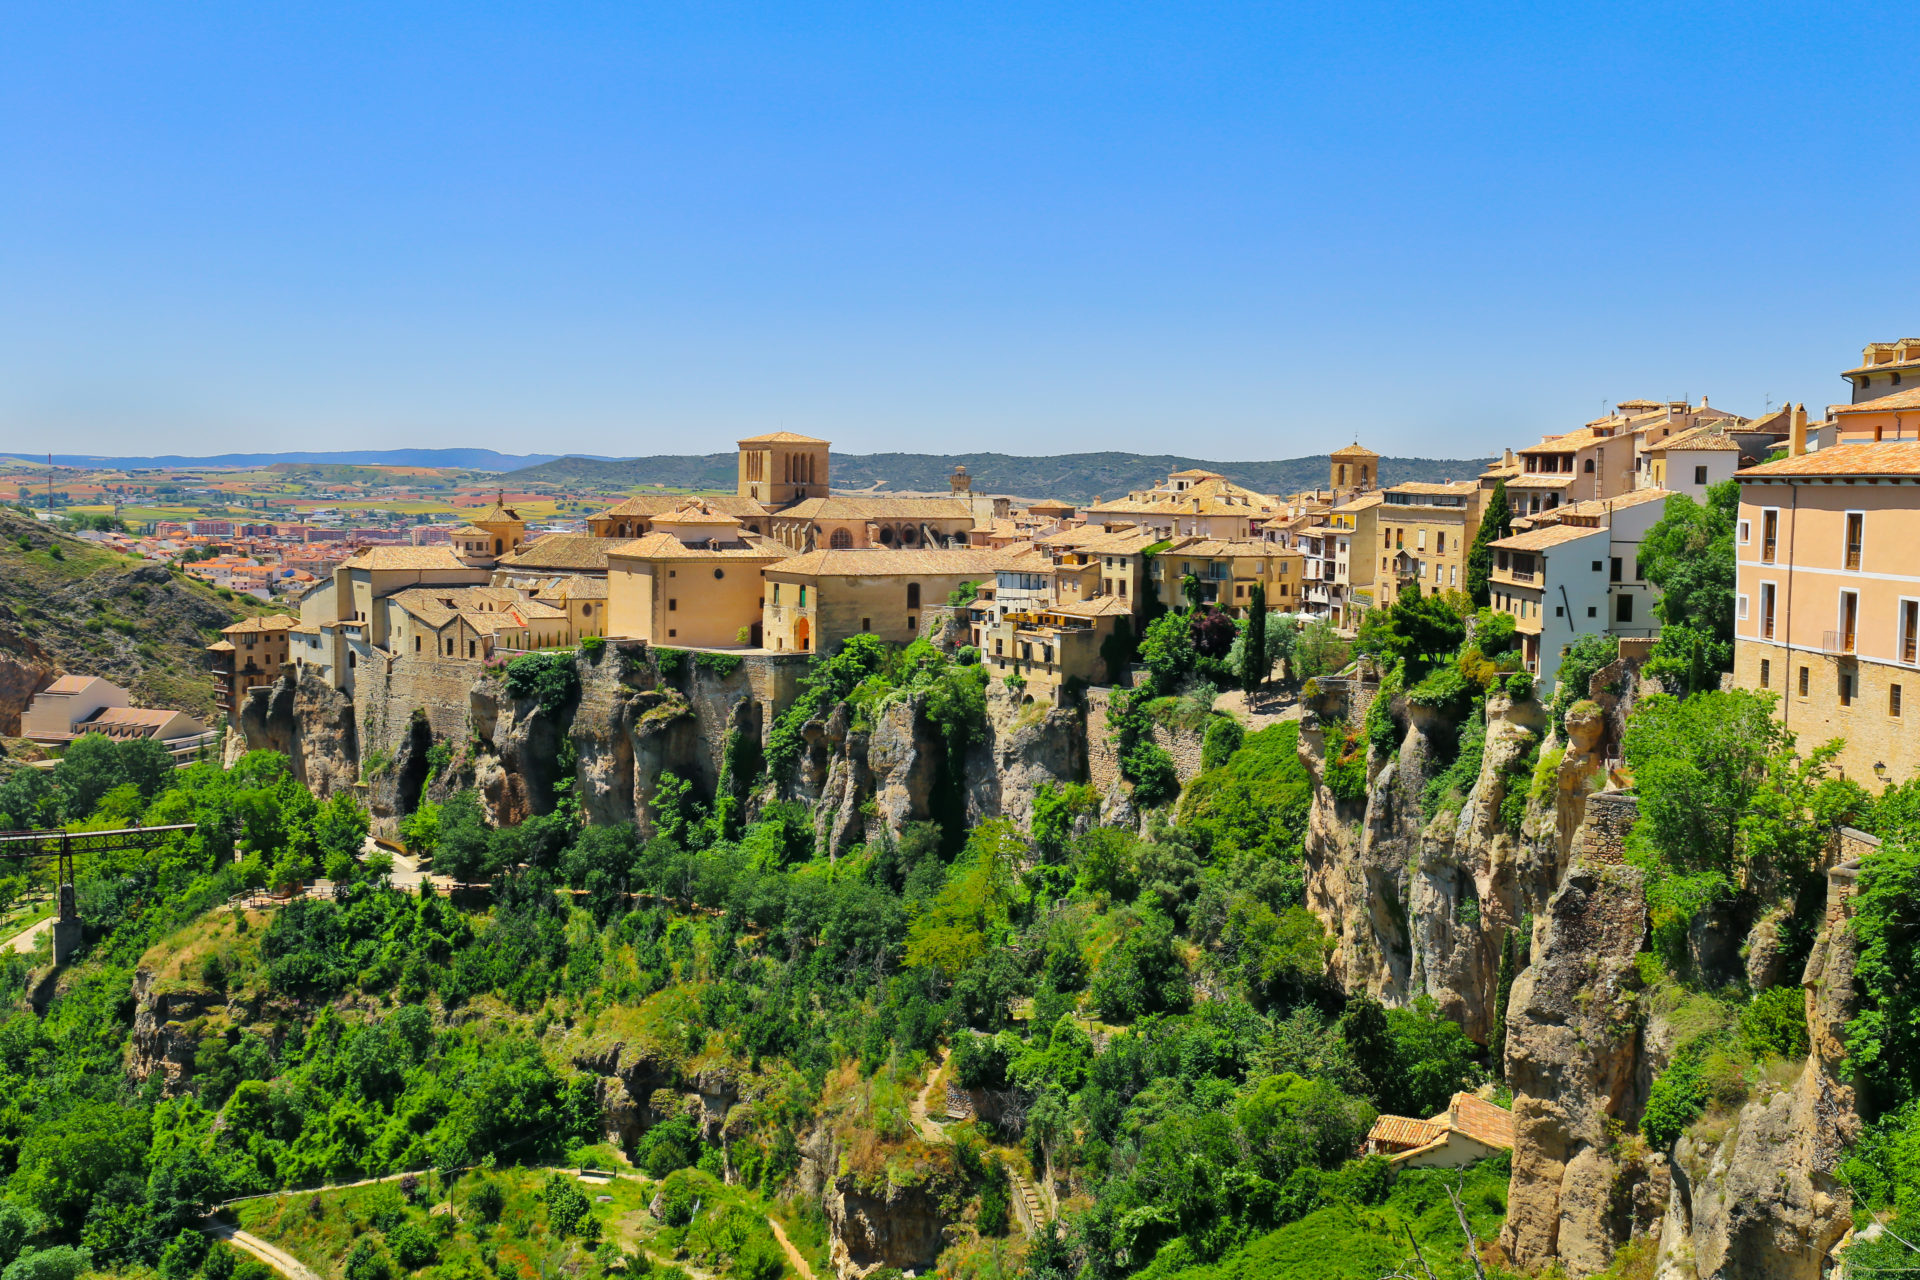 Cliffside houses in the historic, walled city of Cuenca, Castilla-La Mancha